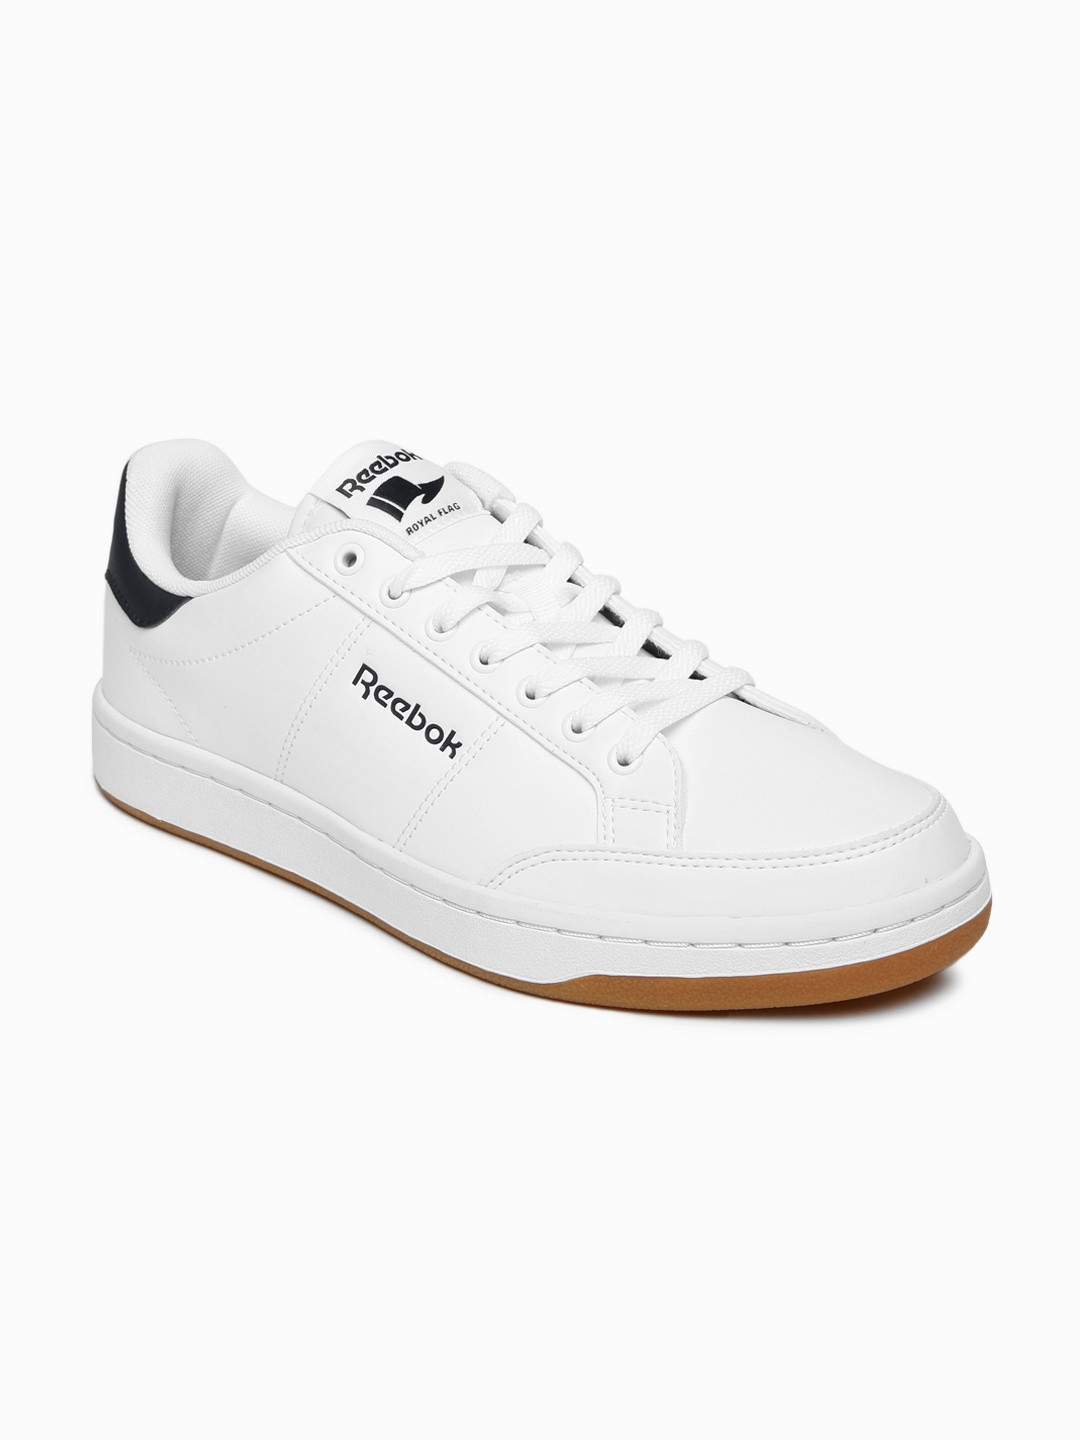 4ddb9fac3c72 reebok casual shoes cheap   OFF45% The Largest Catalog Discounts